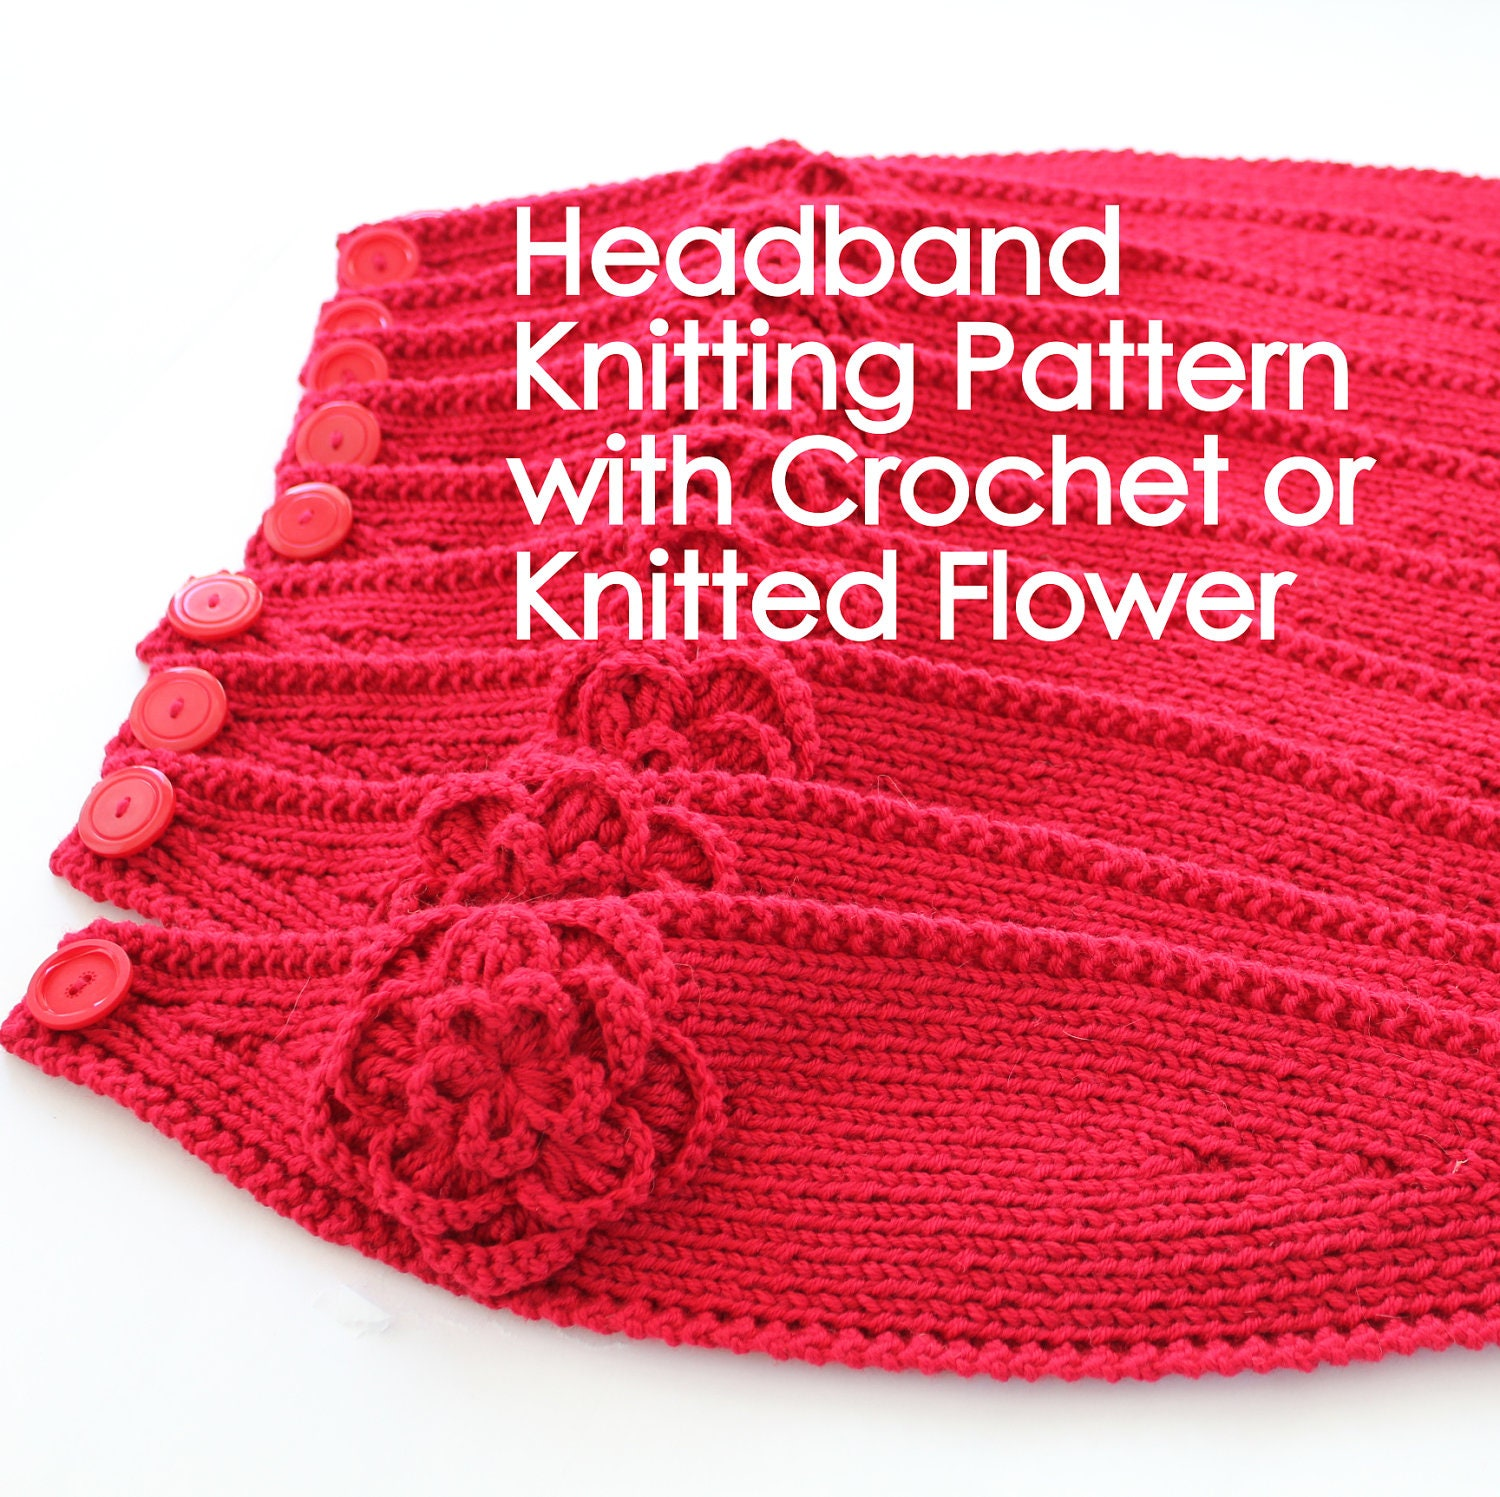 Knit Headband Pattern With Crochet Flower : KNITTING PATTERN Headband with Crochet Or Knitted Flower